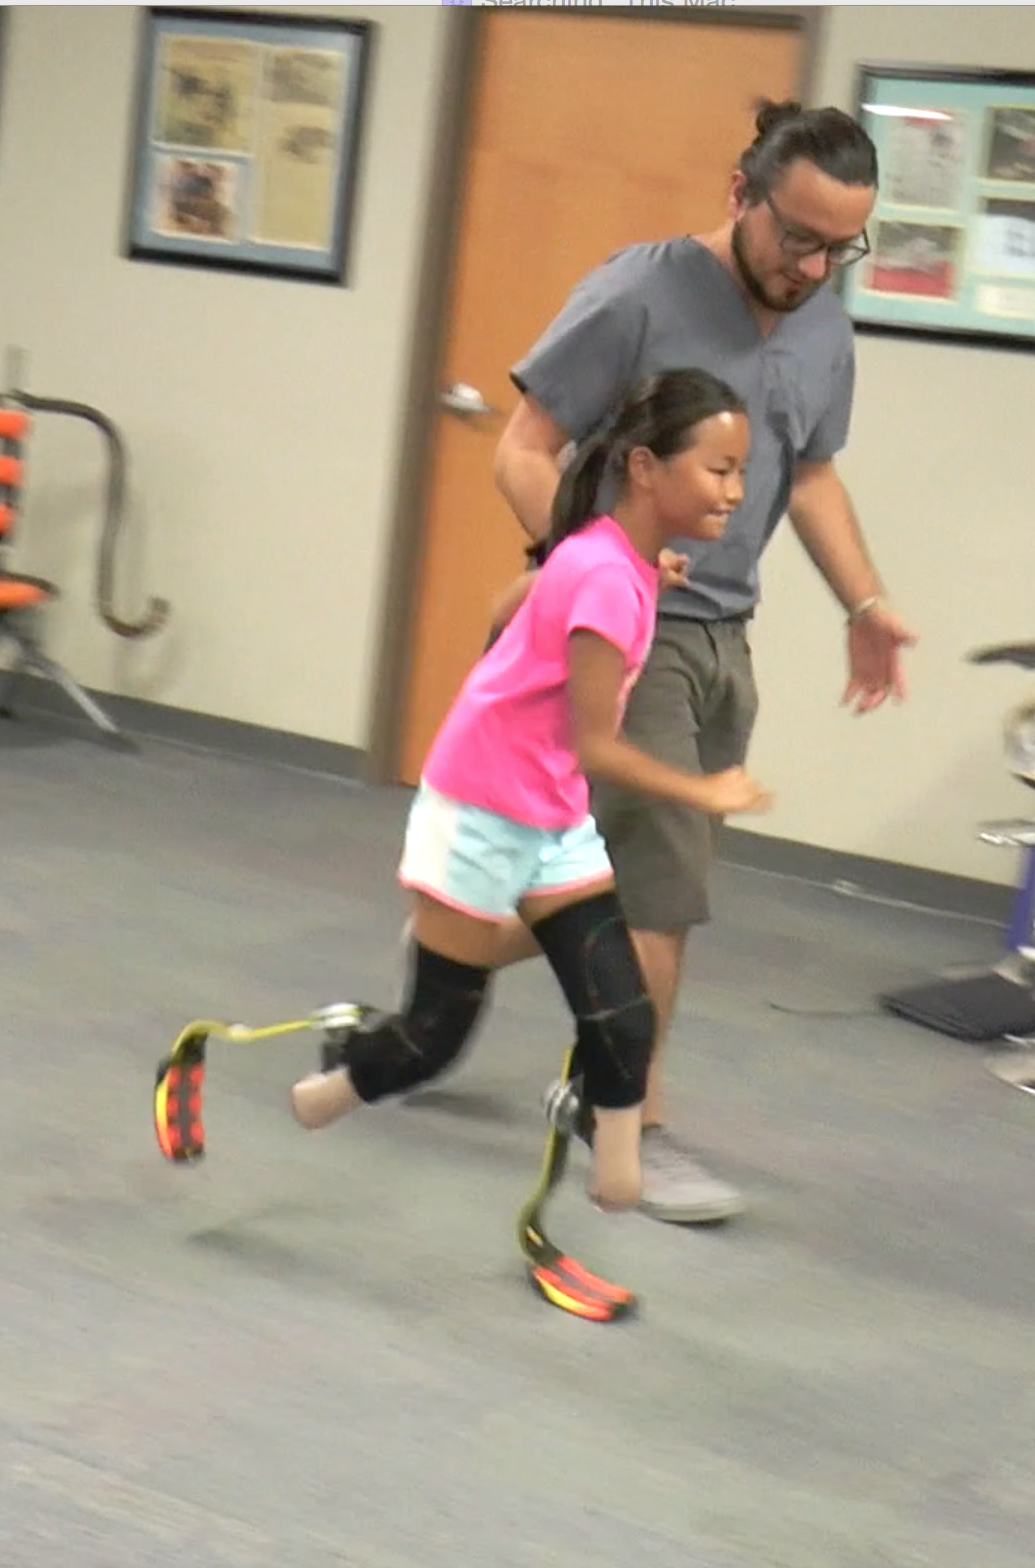 Ruthie Learned to Use a Running Leg/Blade in just 10 minutes!